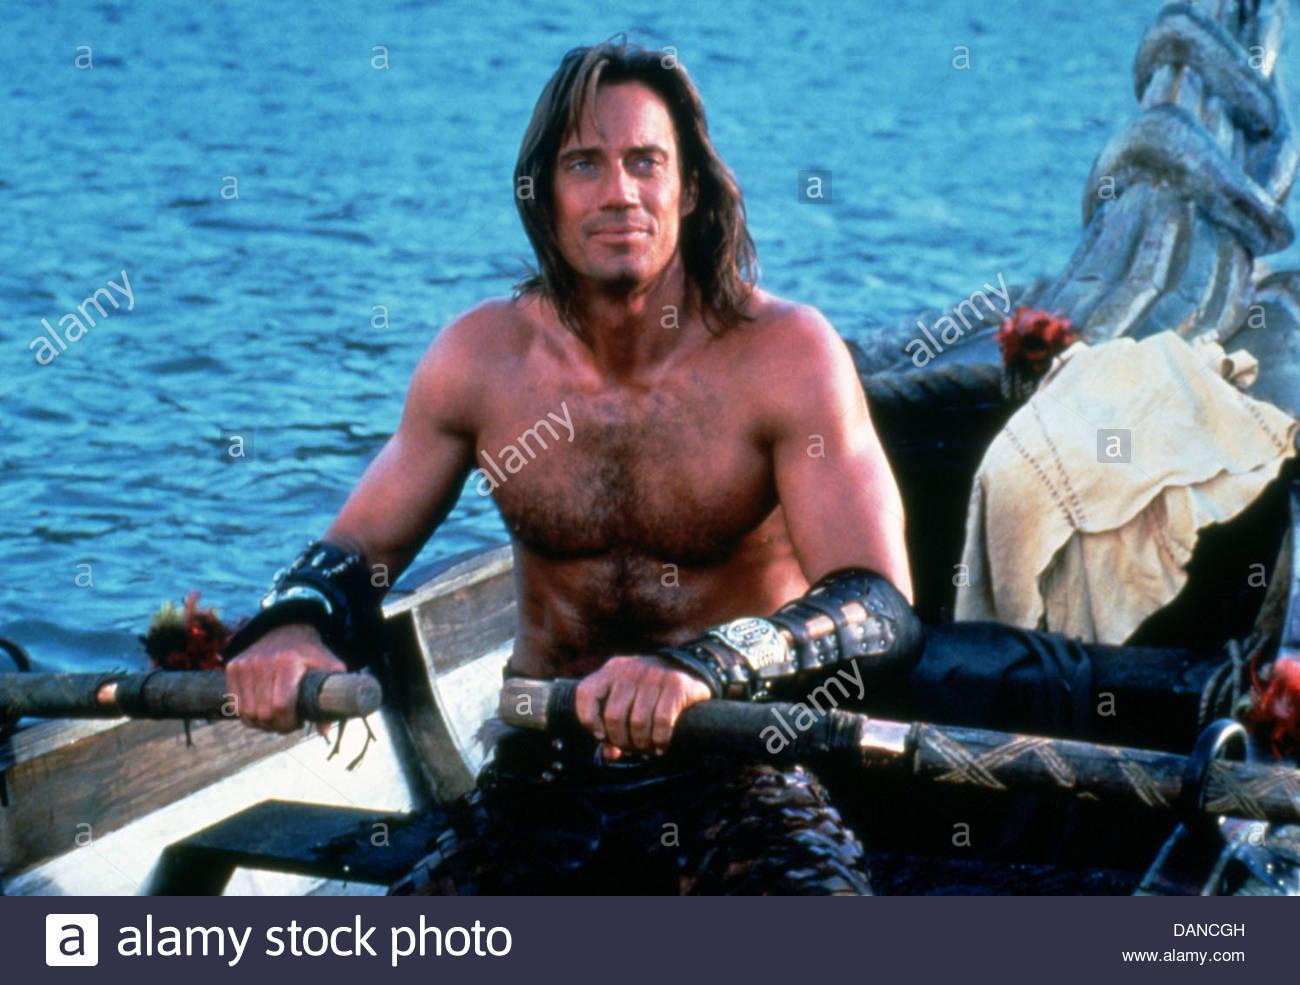 HERKULES DIE LEGENDÄREN REISEN (TV) (1994)-KEVIN SORBO, HTLJ 031 MOVIESTORE COLLECTION LTD. Stockbild